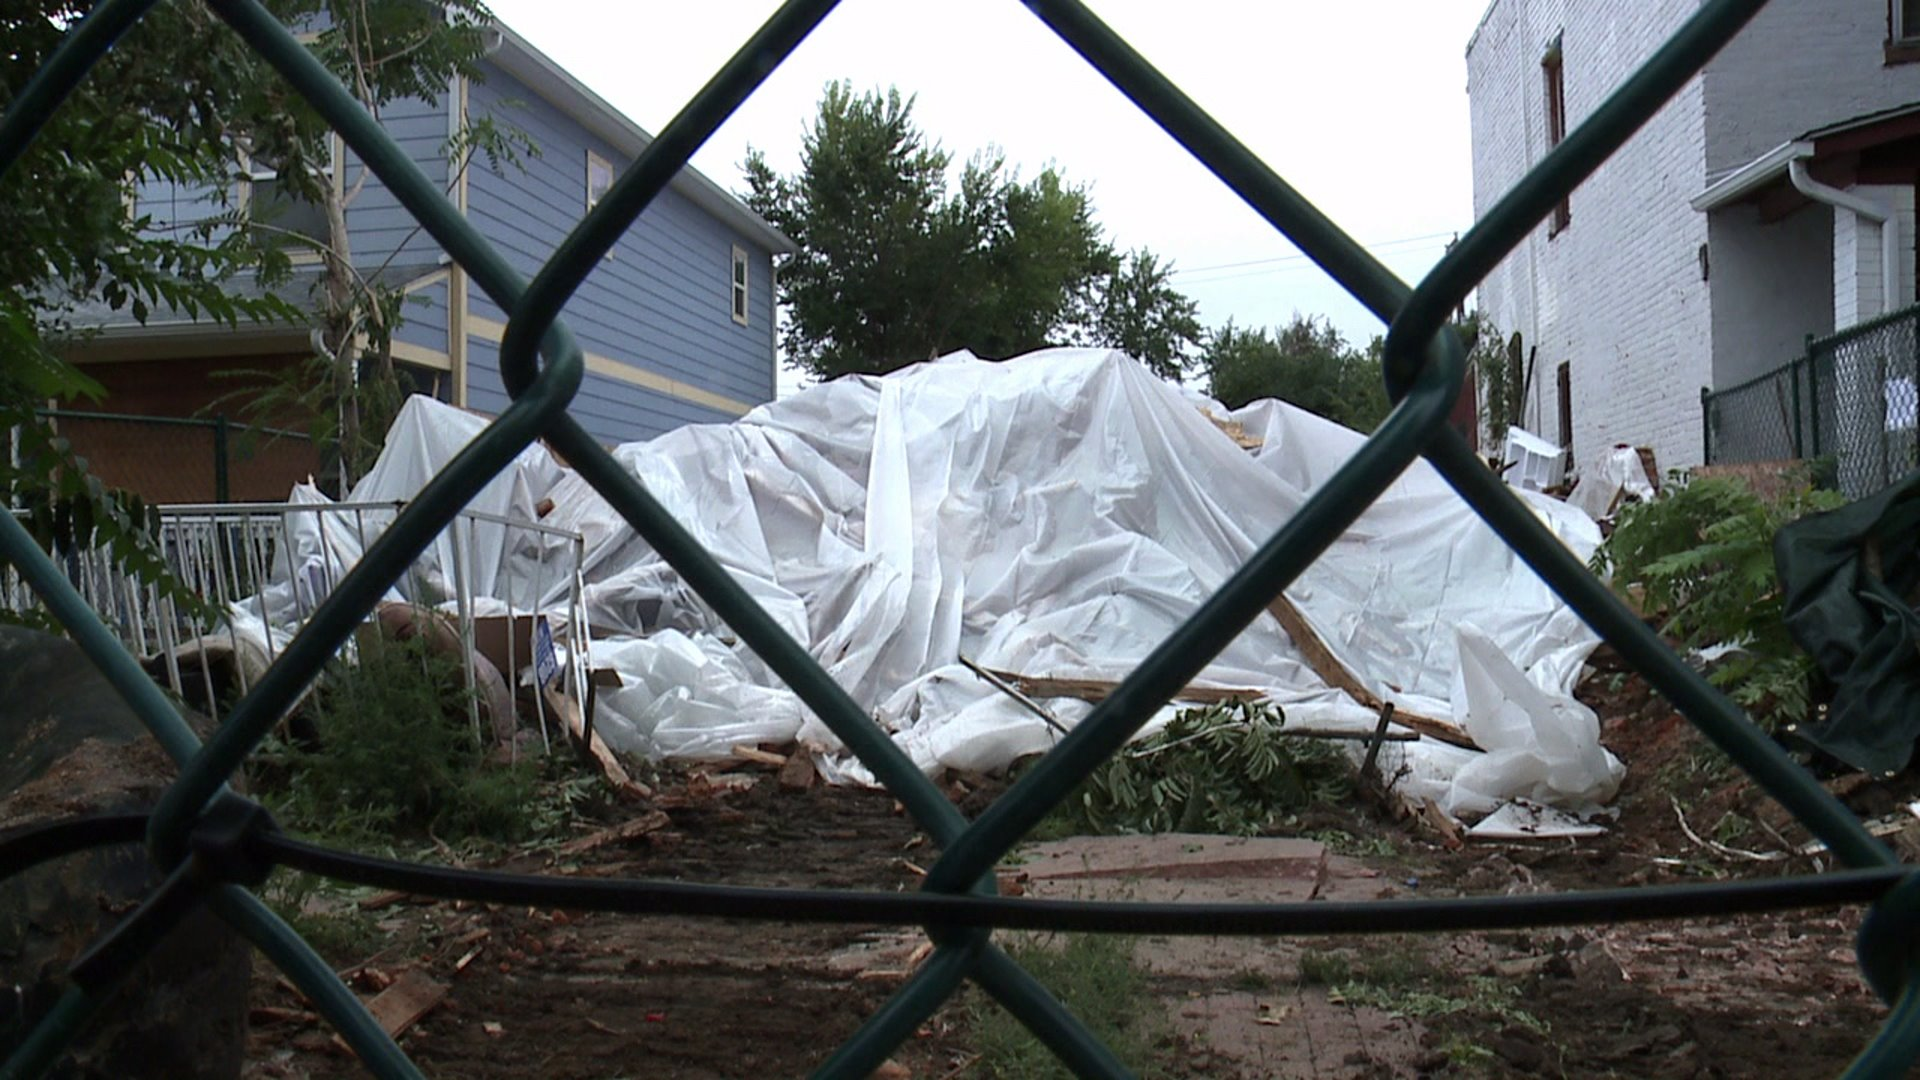 Rubble is all that's left of house that had wall collapse at 12th and Kalamath in Denver